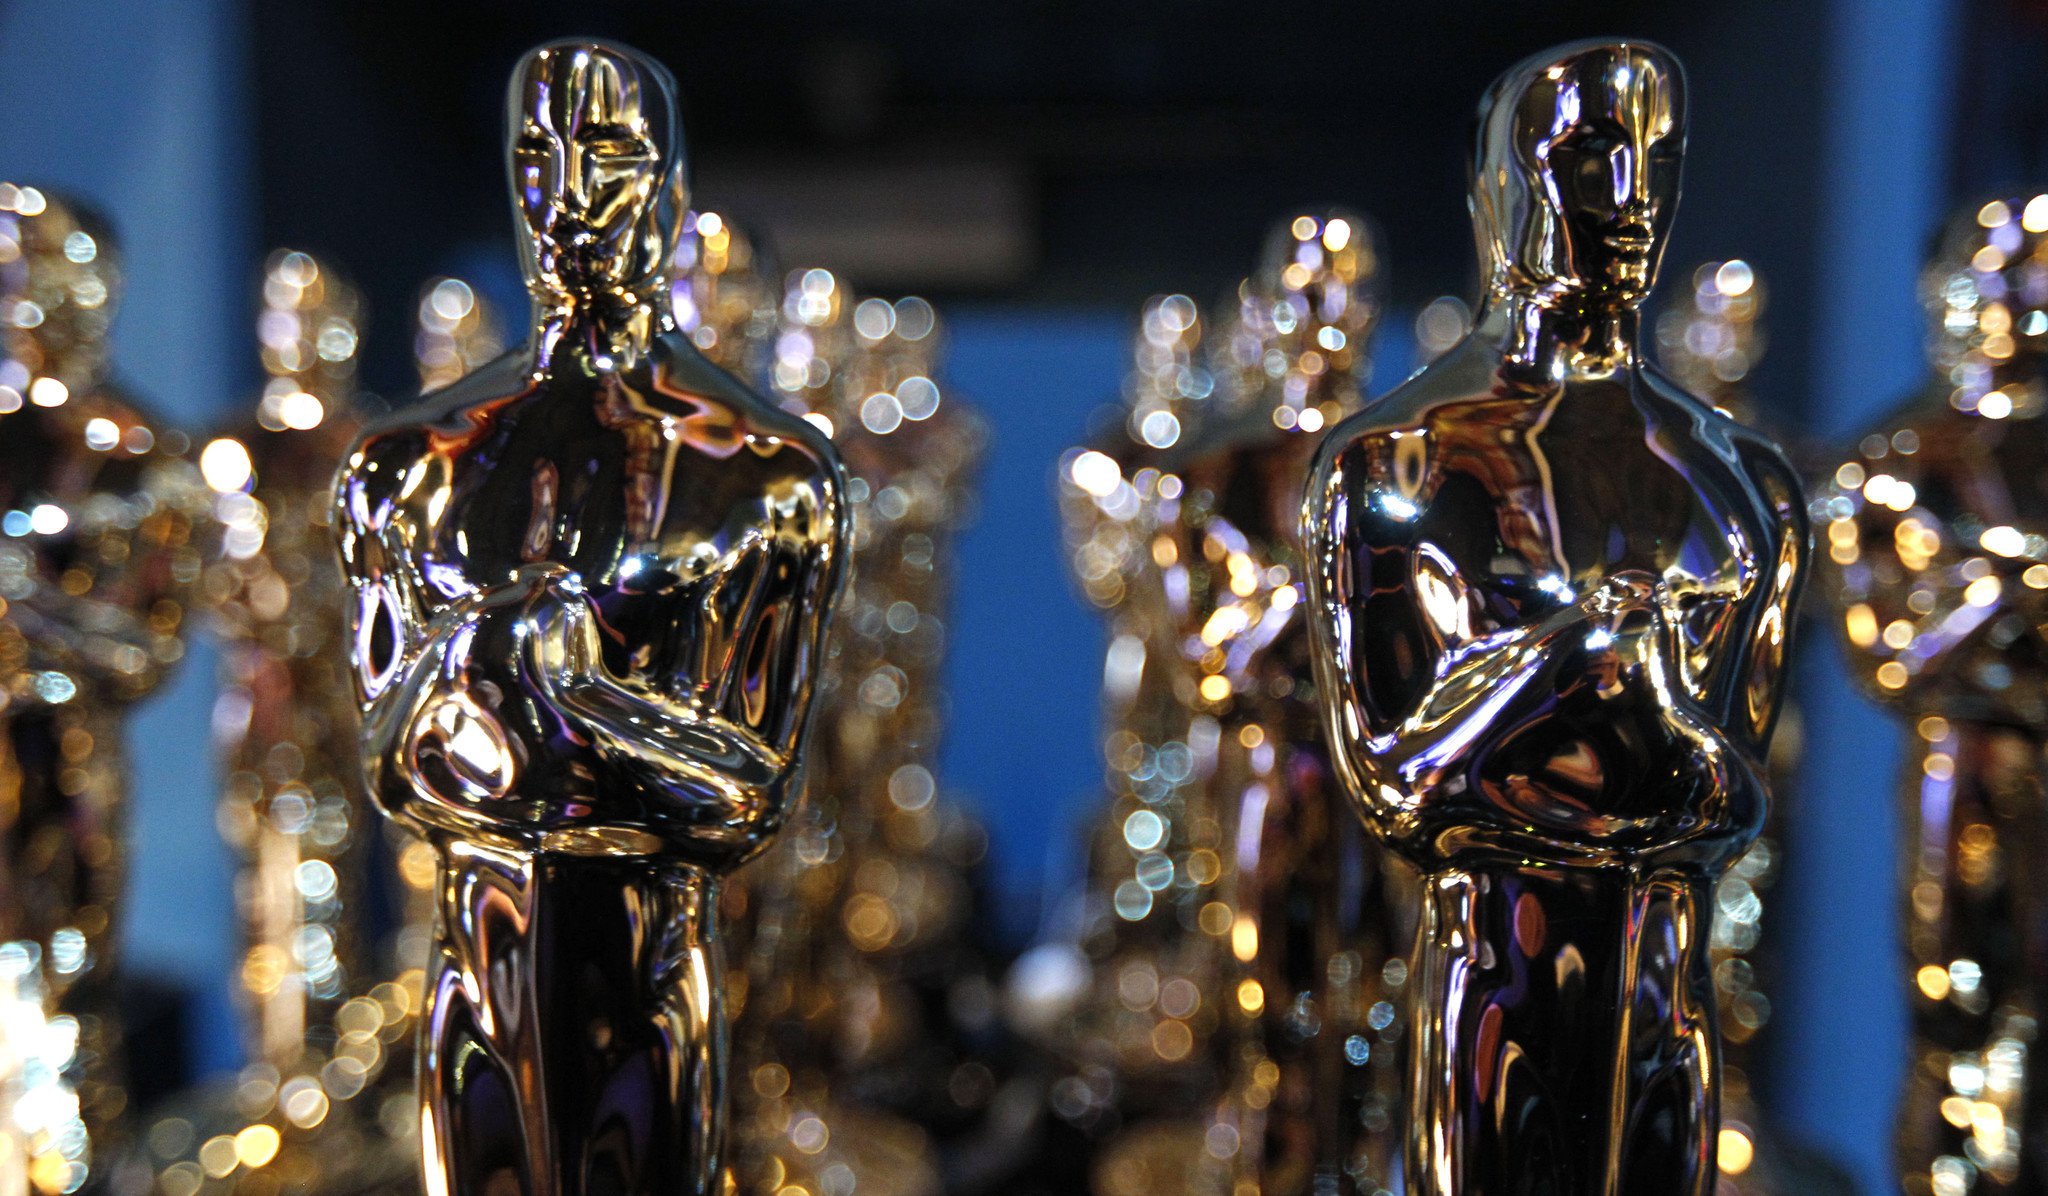 Oddsmakers are taking wagers on who takes home Academy Awards